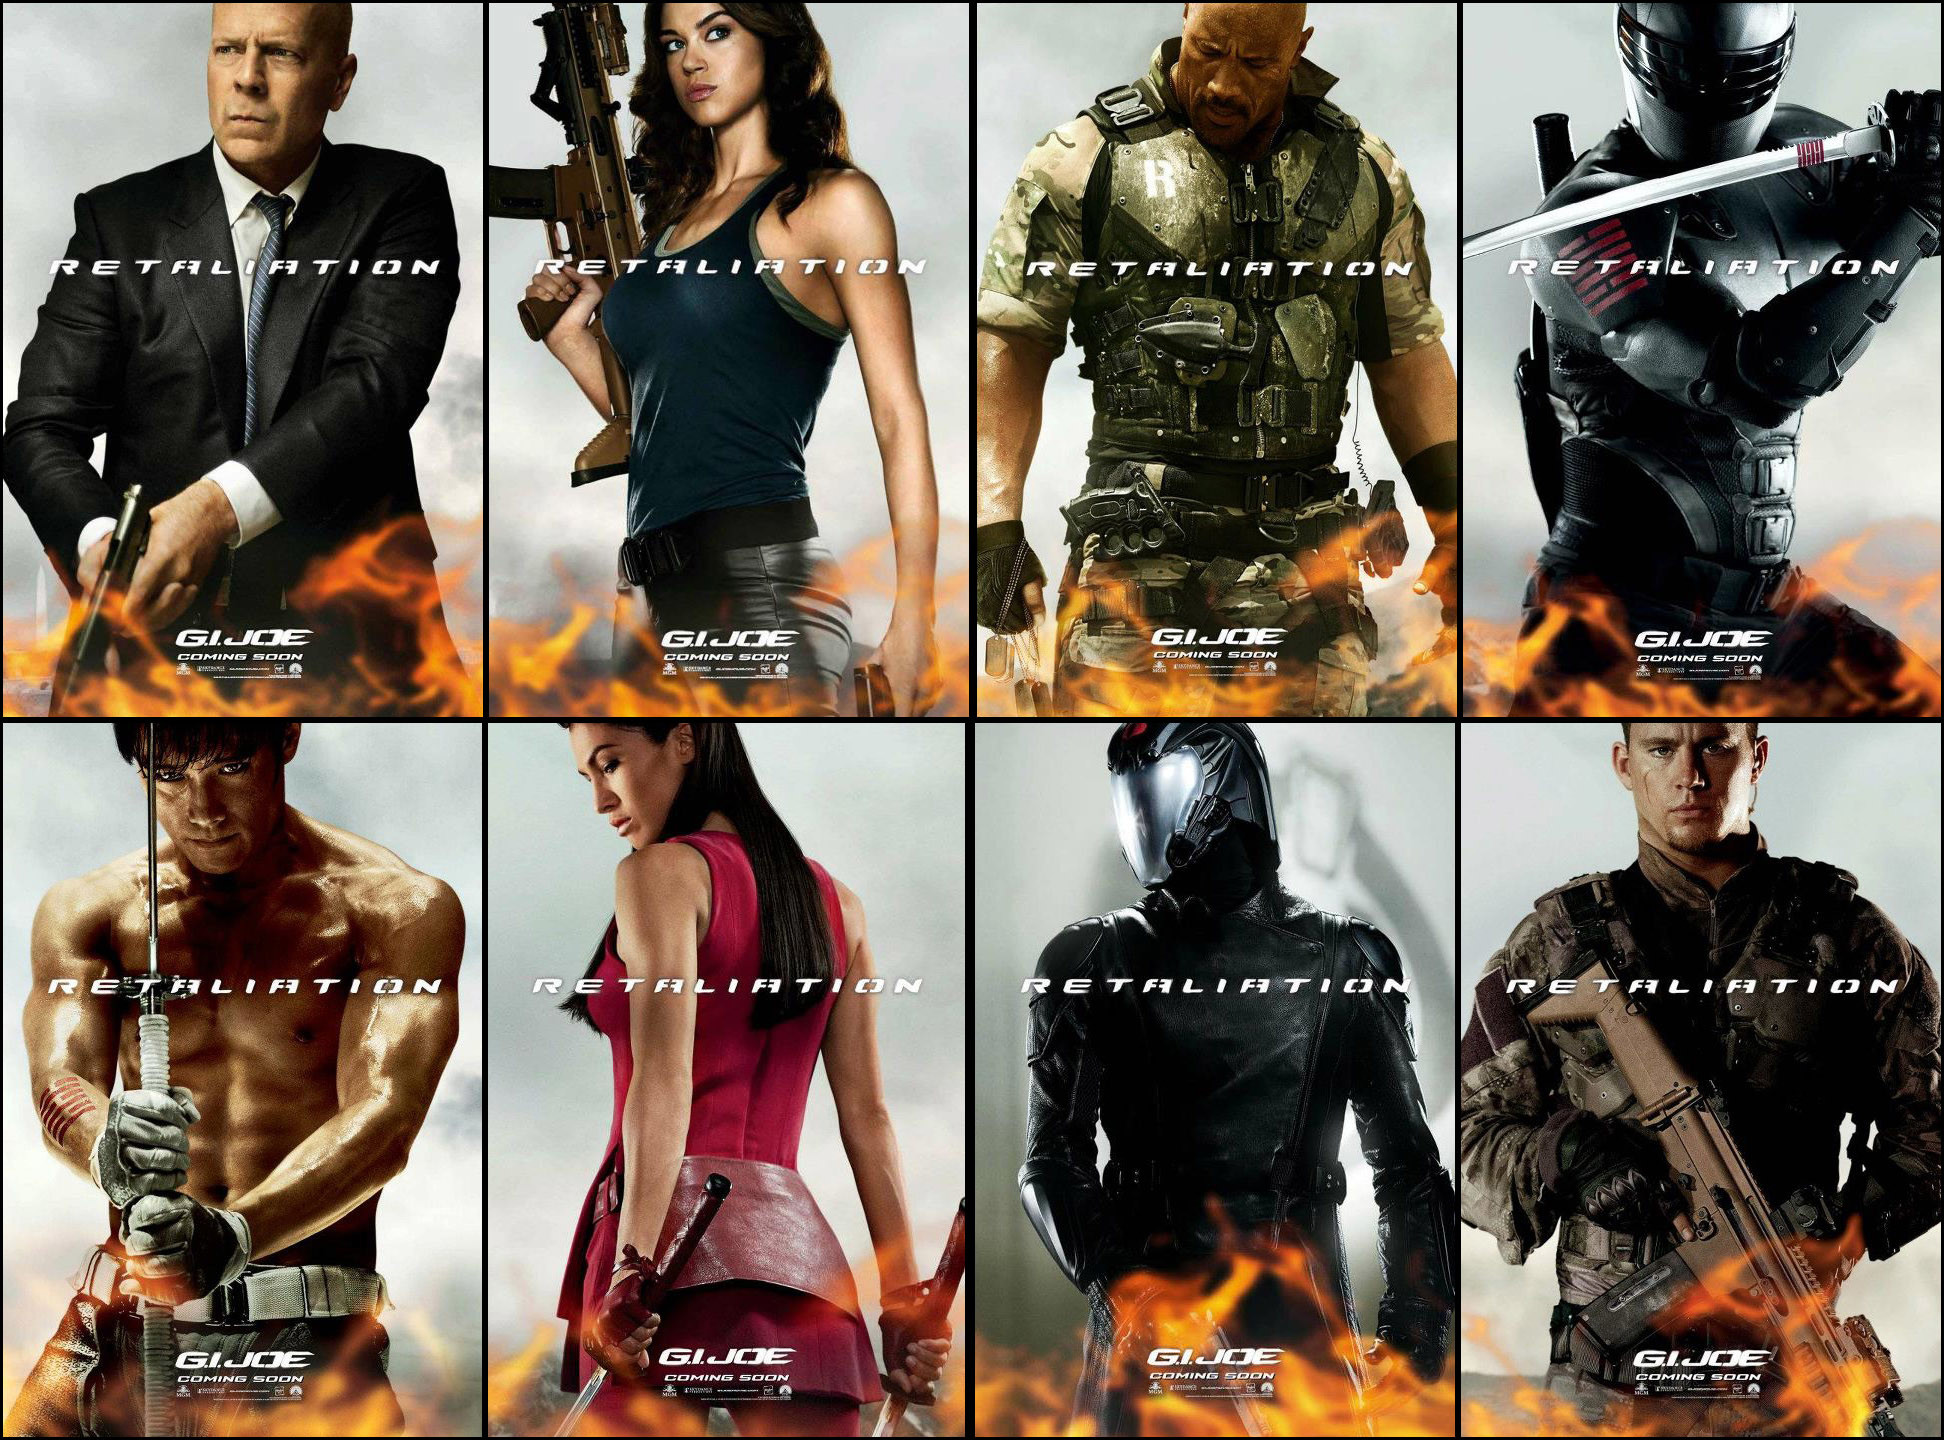 1944x1440 Movie - G.I. Joe: Retaliation Movie Cast Dwayne Johnson Bruce Willis  Wallpaper